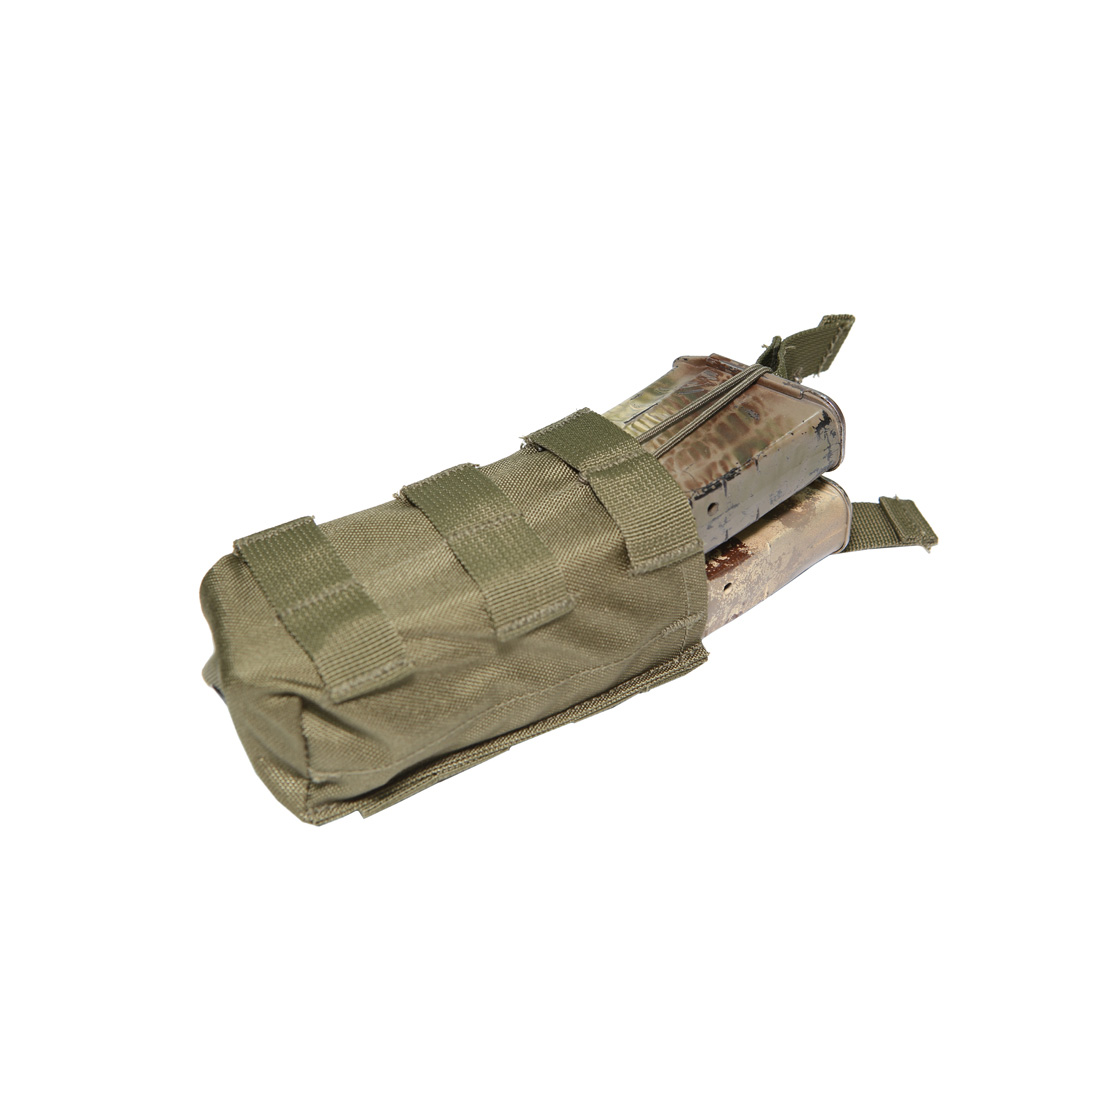 Подсумок Под Магазин Open Top Rifle Mag Pouch, holds 2 R.02 Helikon-Tex